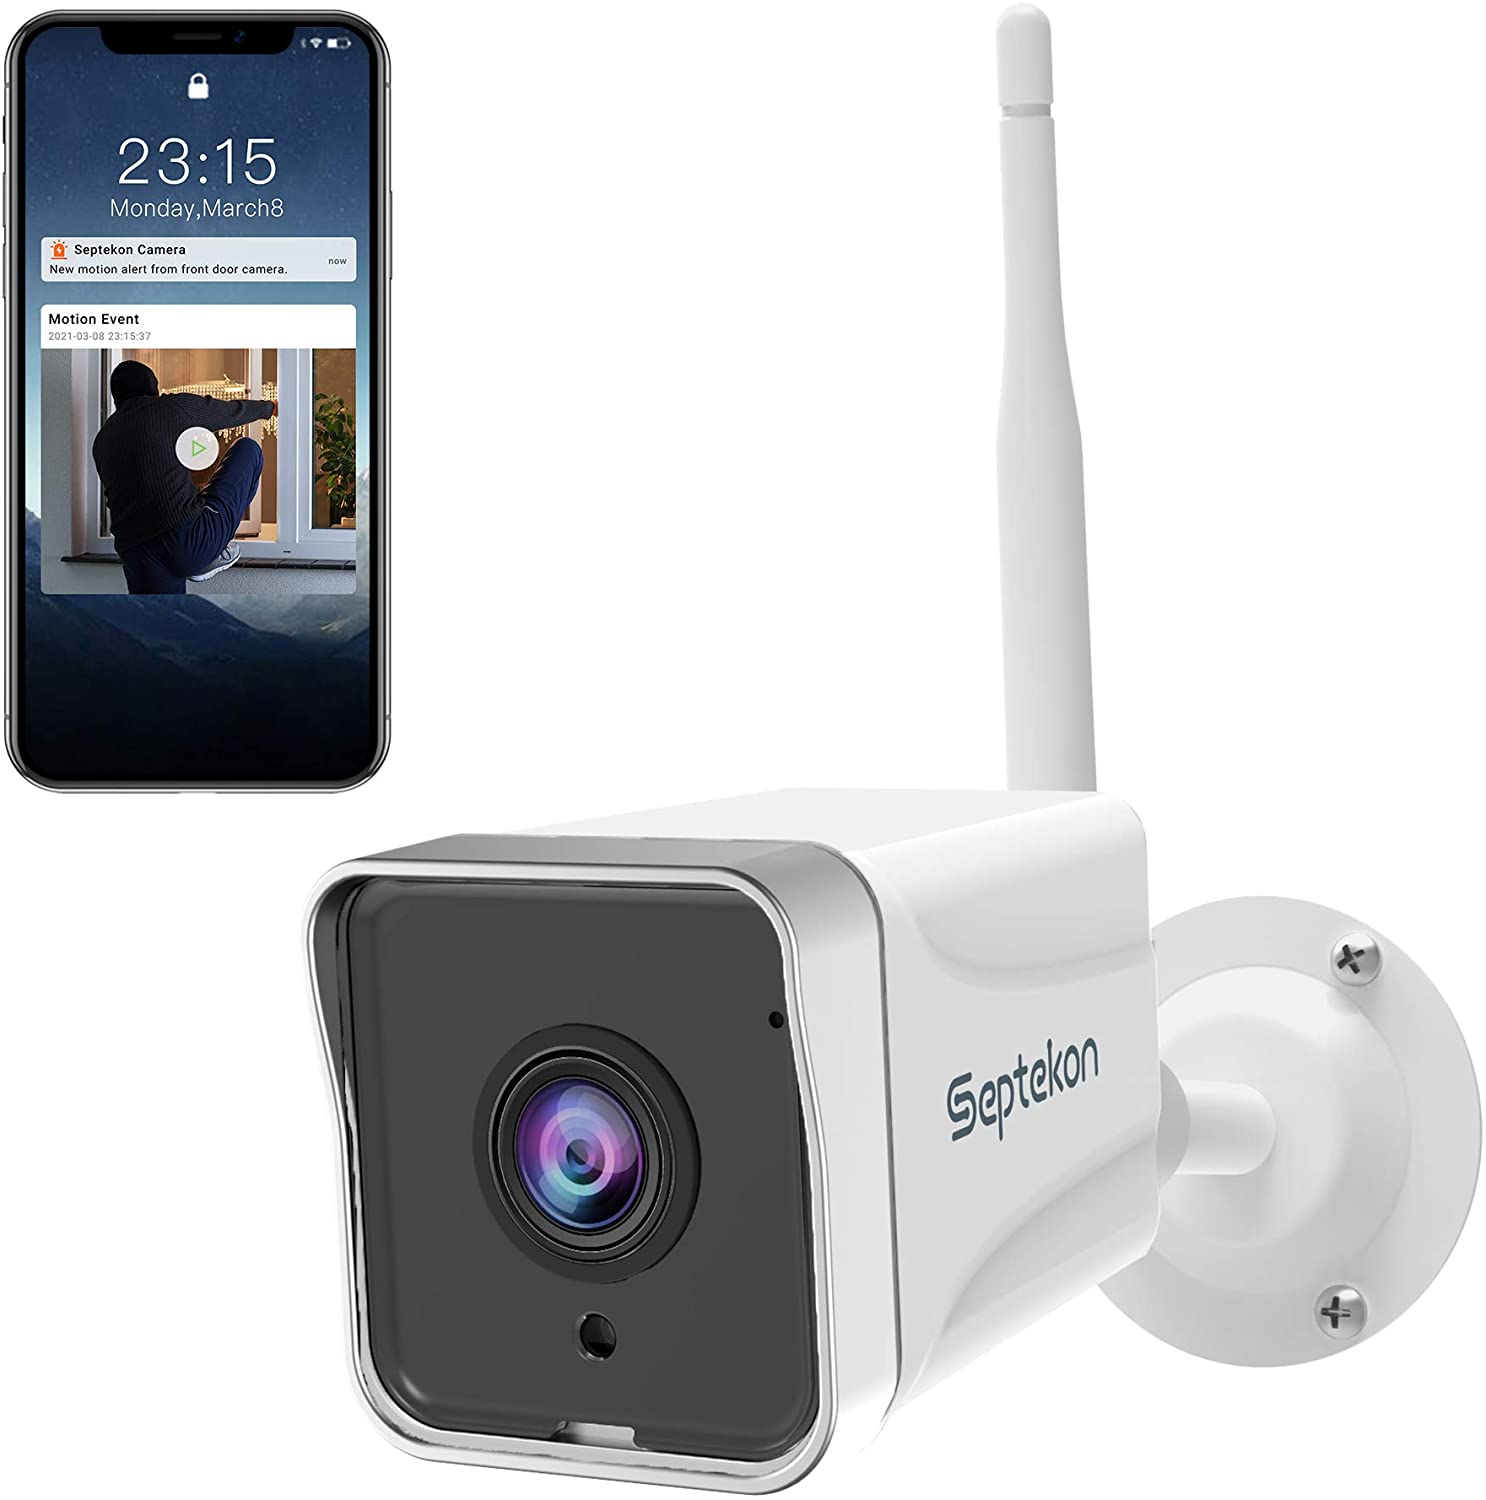 [2021 Upgraded] Security Camera Outdoor, Septekon 1080P WiFi Home Surveillance Camera, IP66 Waterproof FHD Night Vision Cameras with Motion Detection, 2-Way Audio, Cloud Storage, Work with Alexa - S50